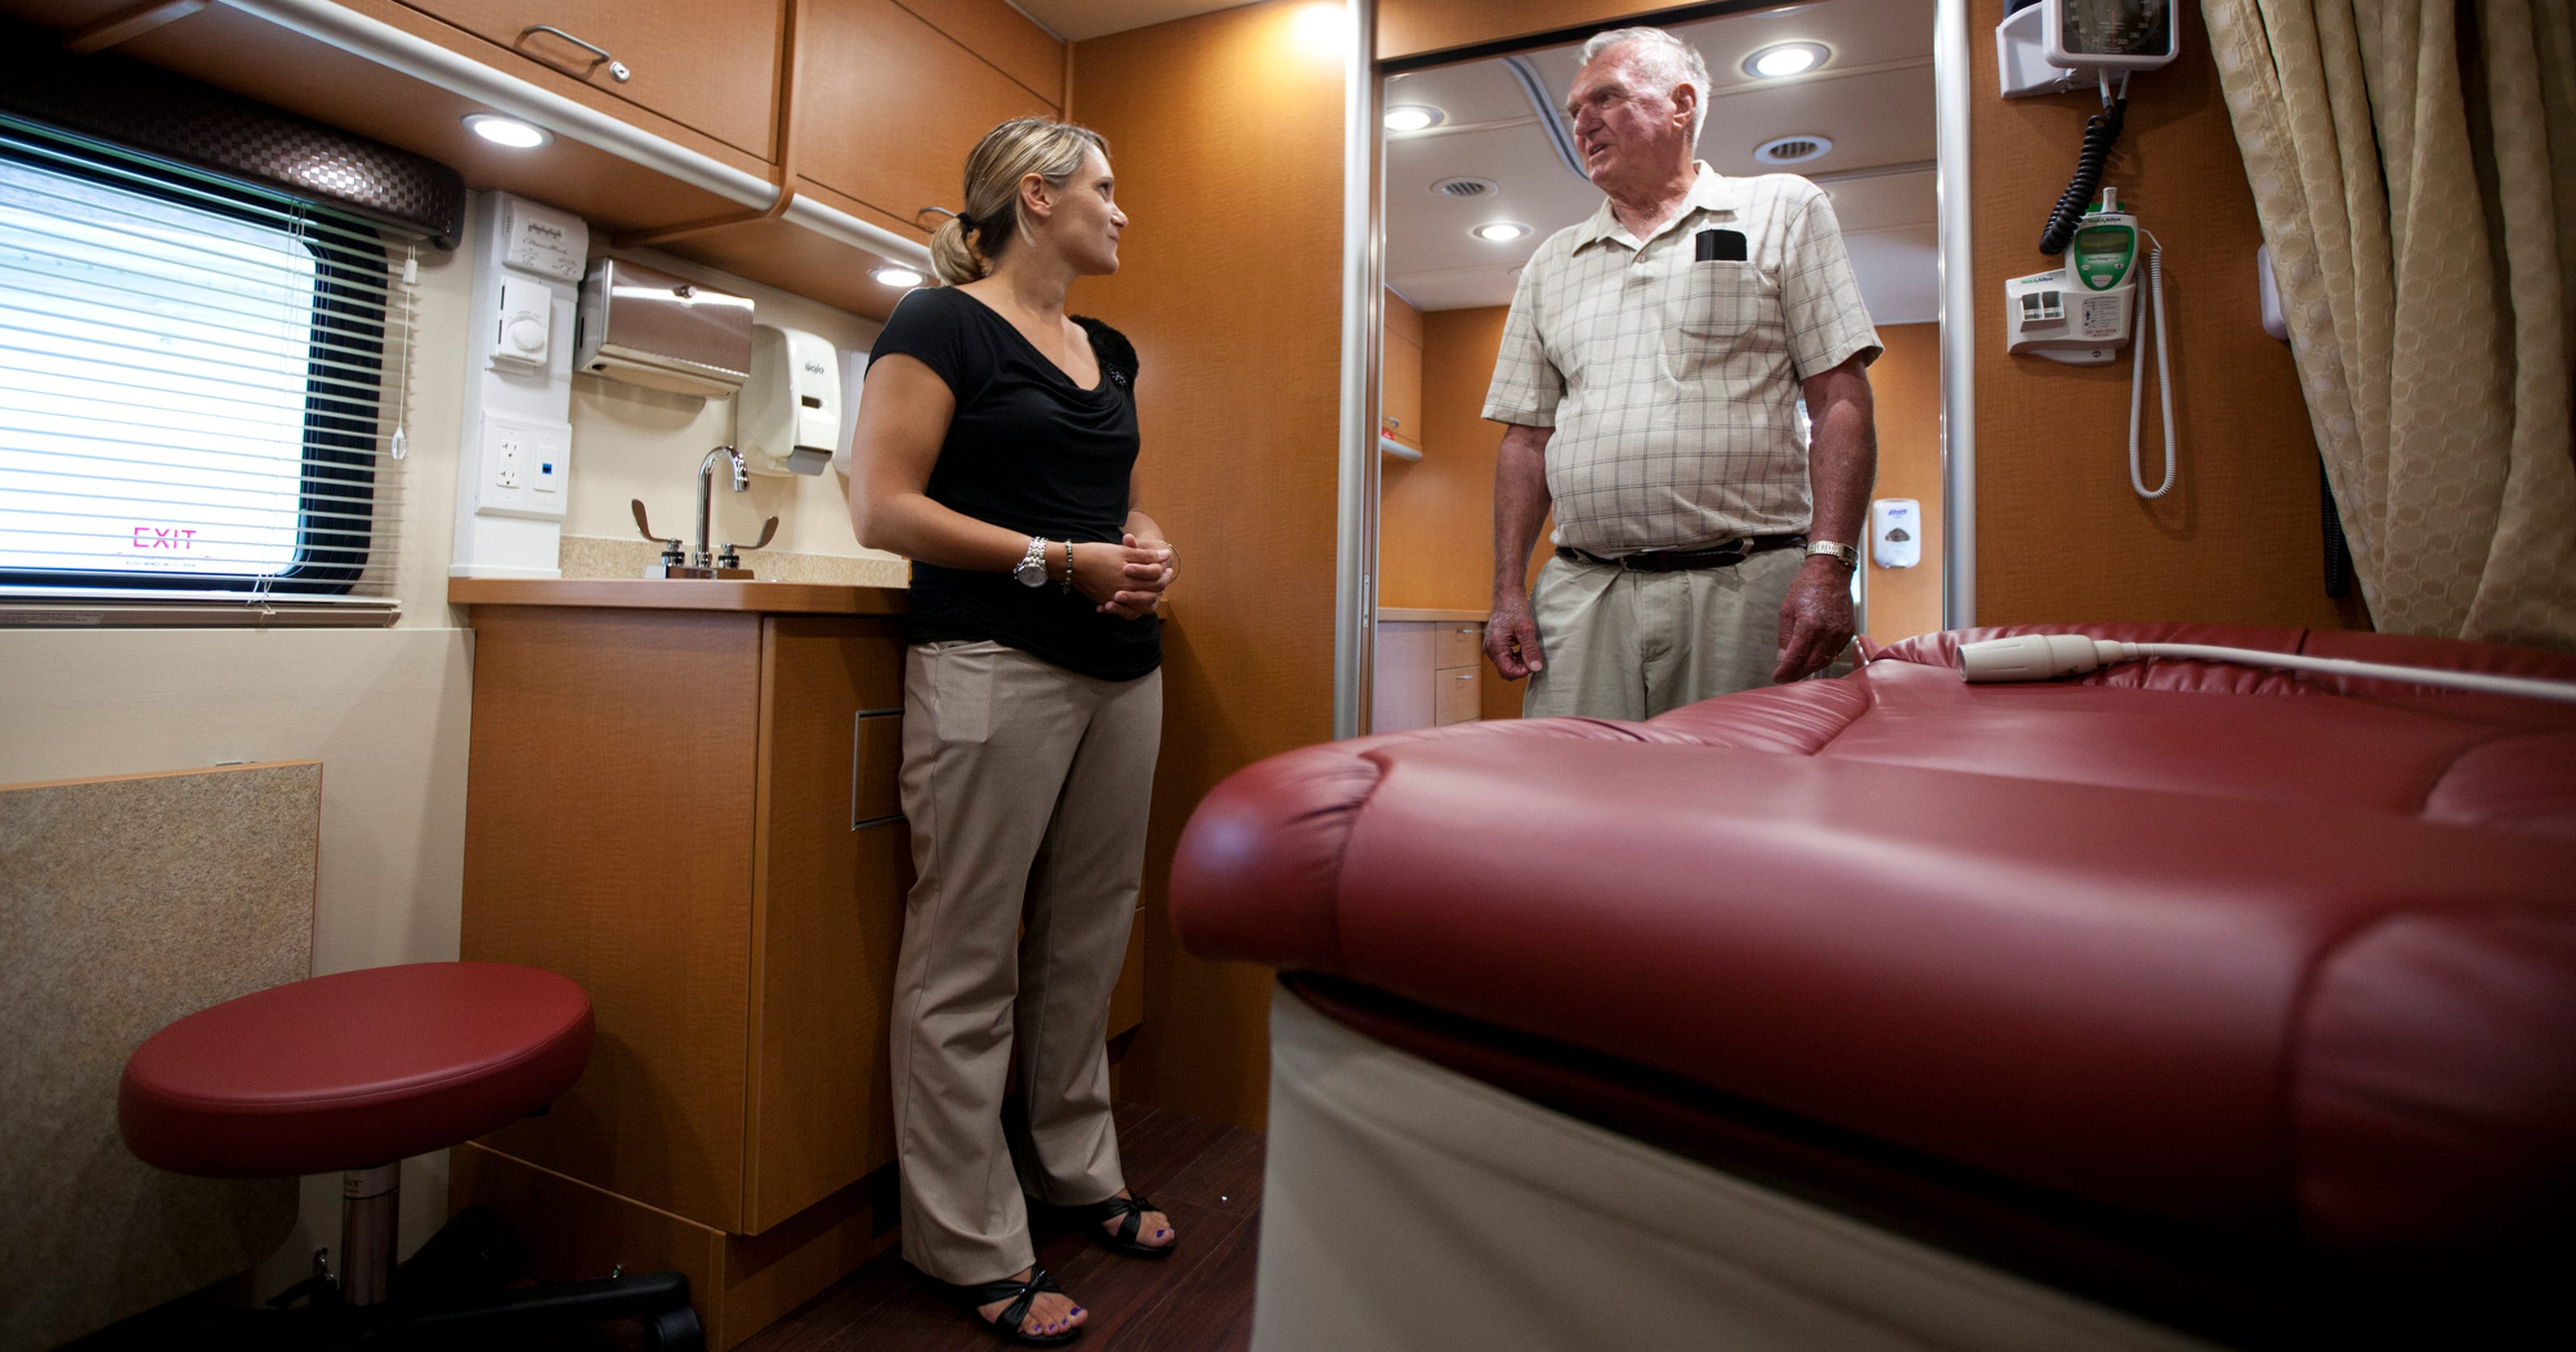 VA mobile unit to bring health services to rural areas